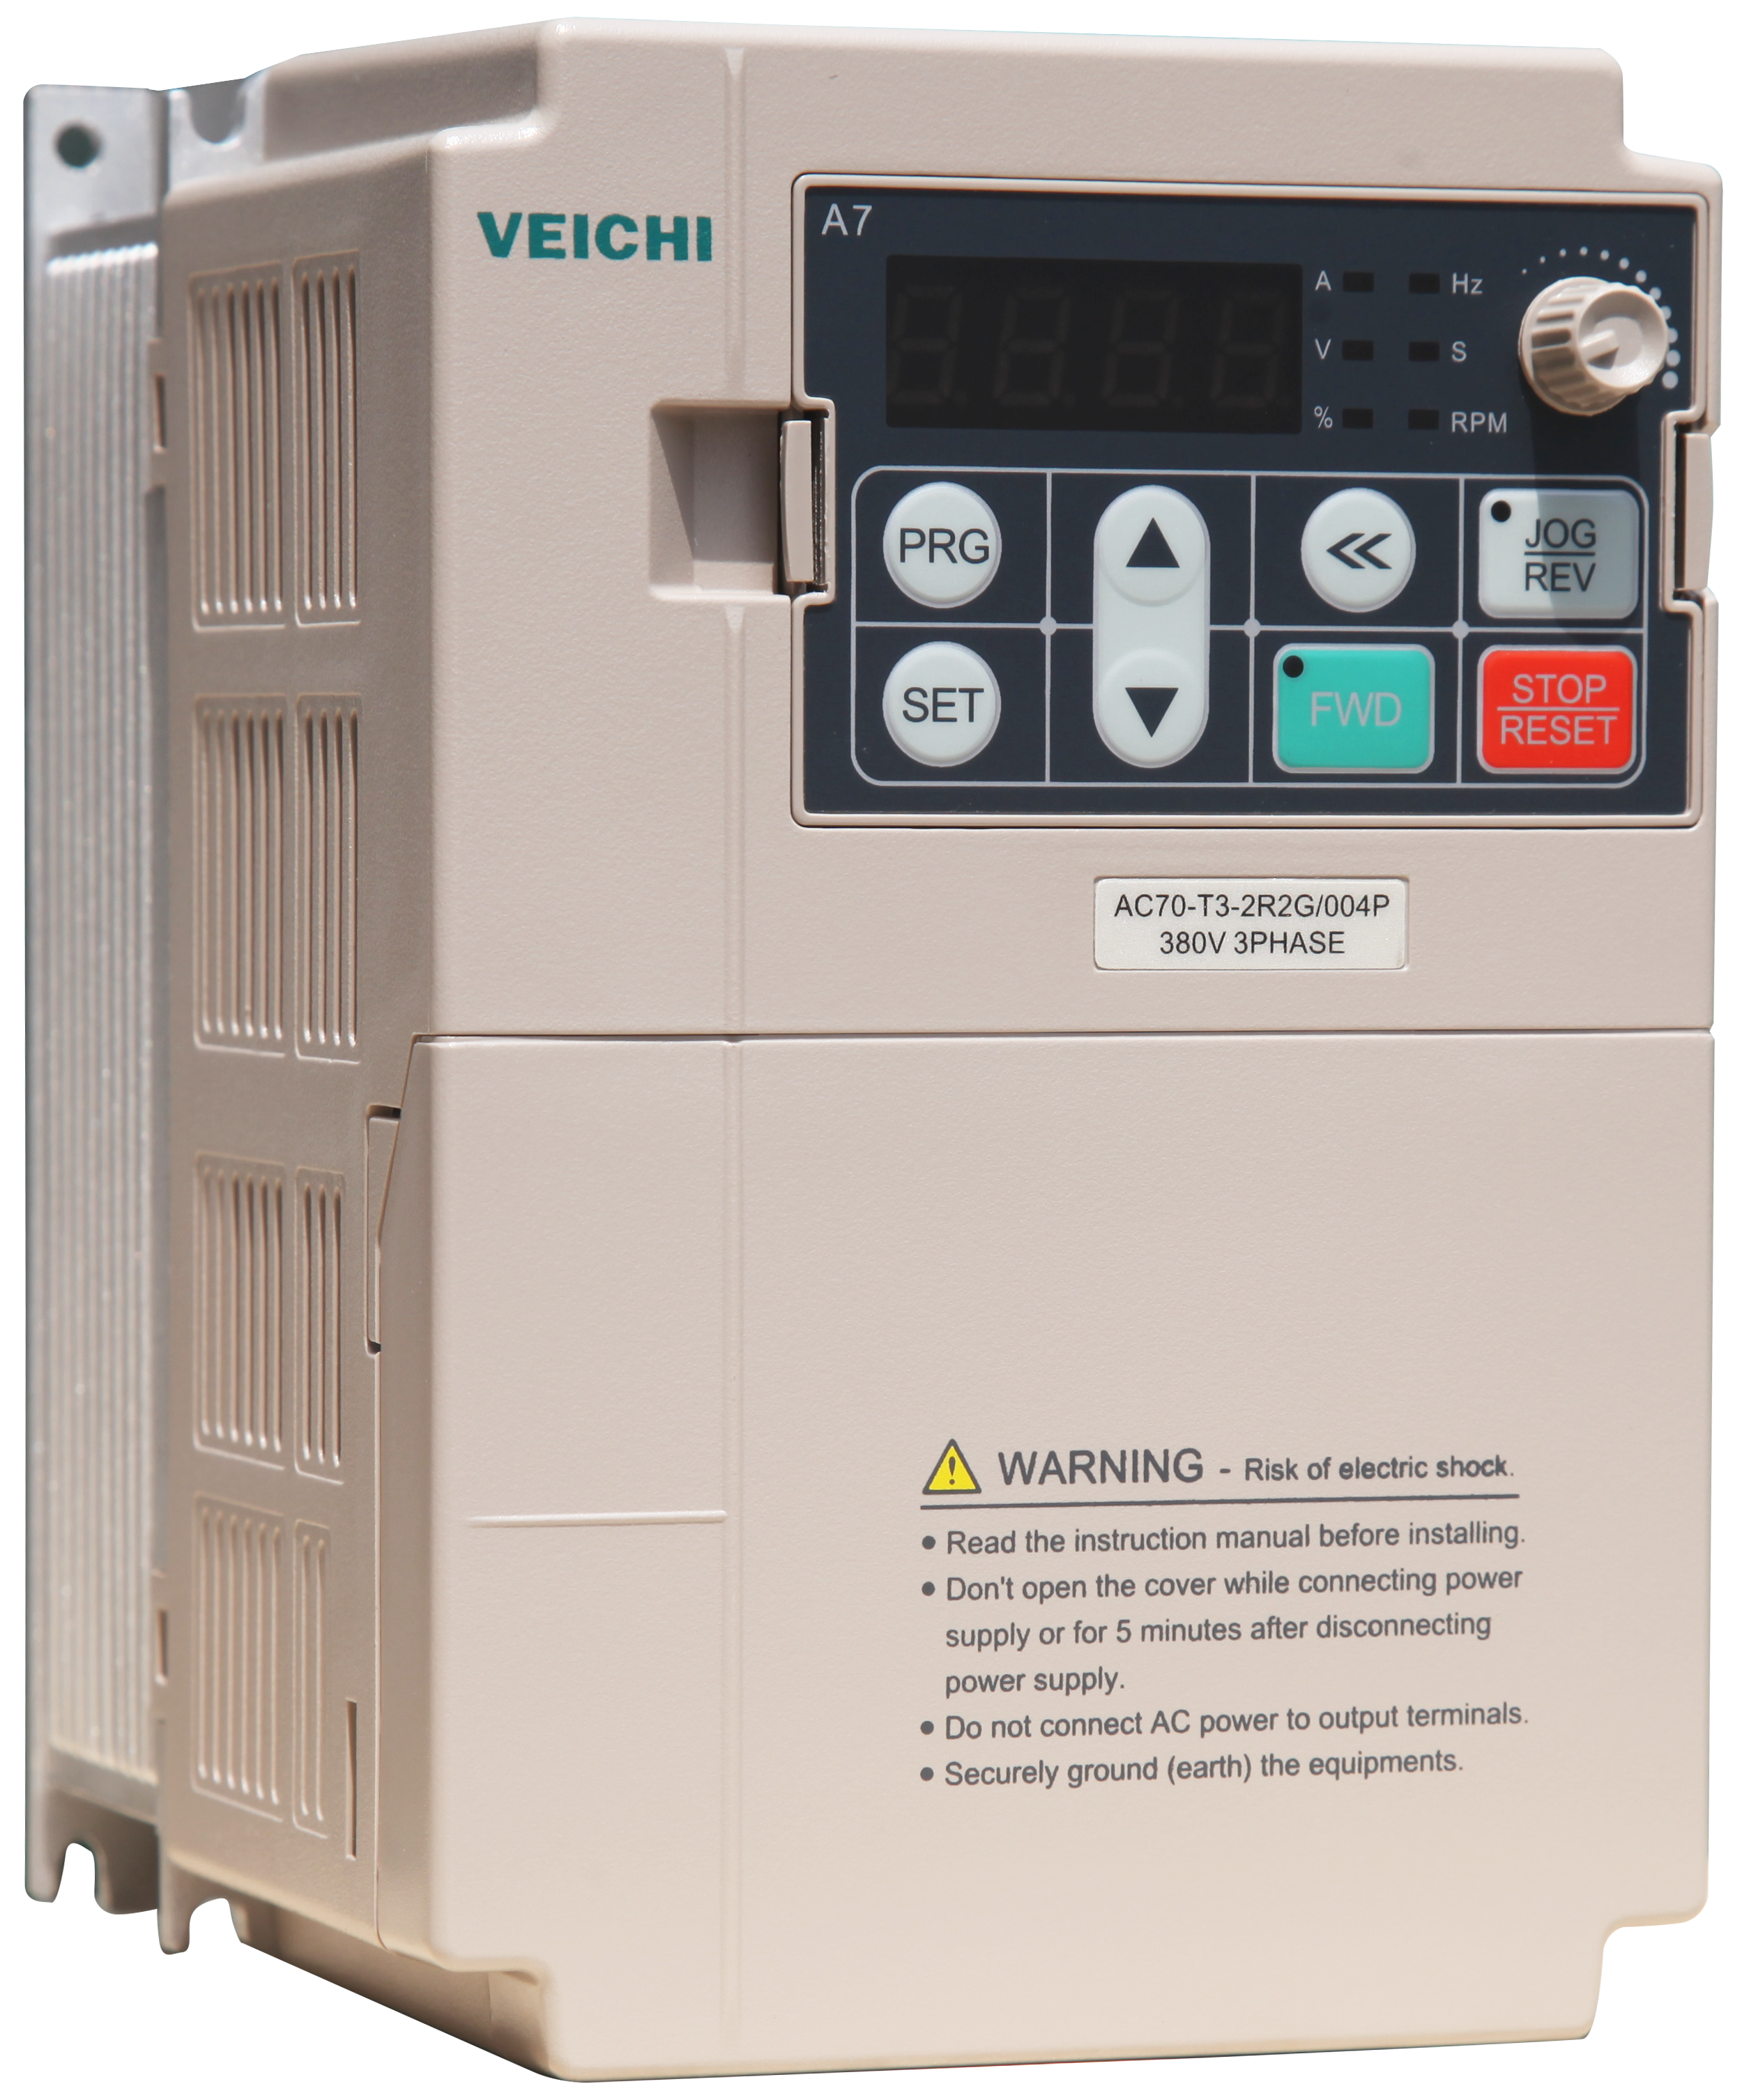 medium resolution of electrical engineering variables veichi ac70 variable frequency drive stable performance and high quality more details http